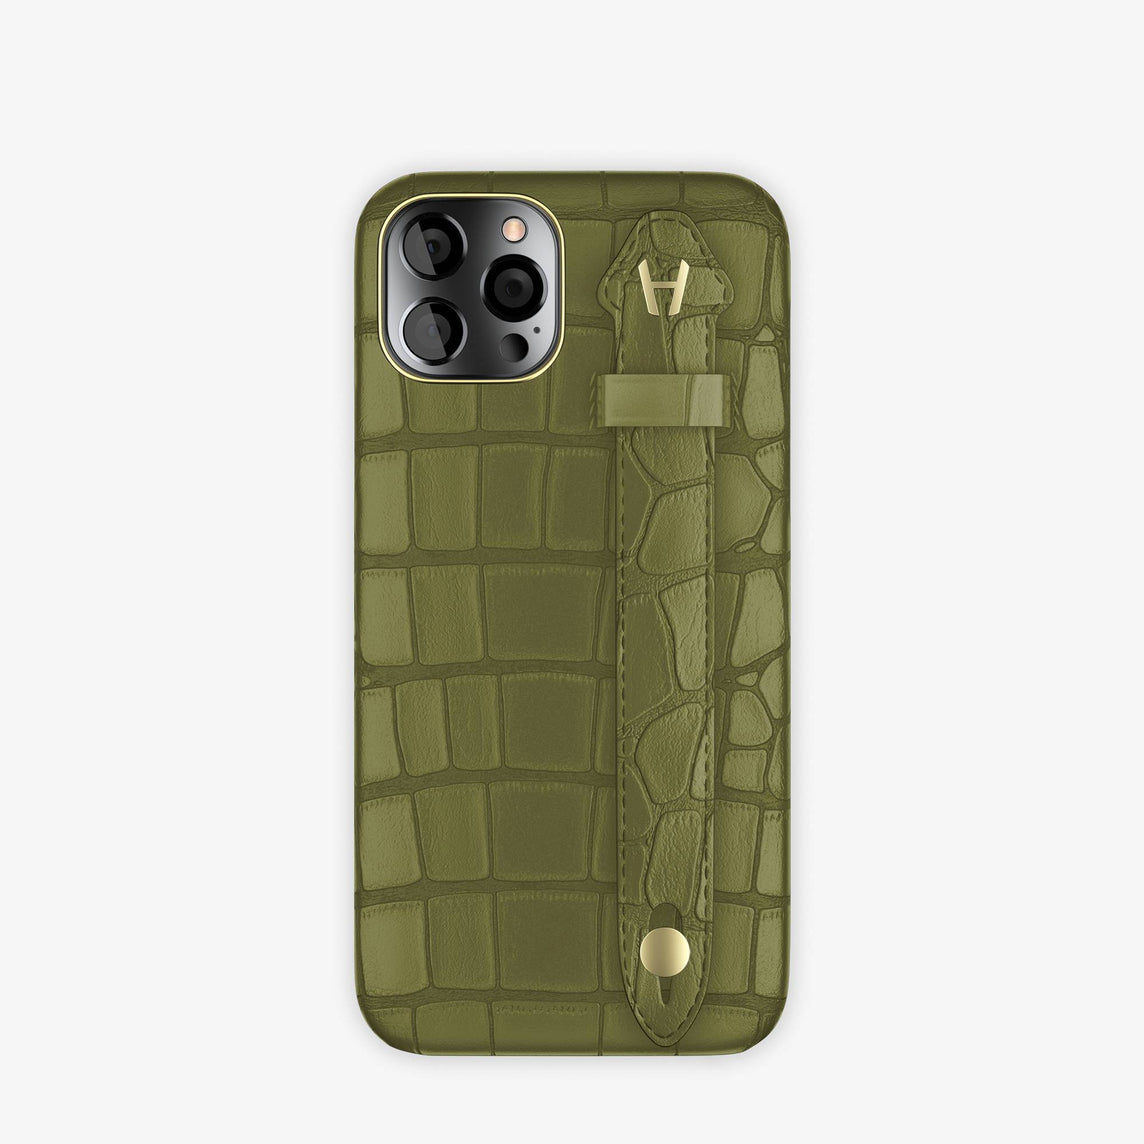 Alligator Side Finger Case iPhone 12 & iPhone 12 Pro | Khaki/Khaki -Yellow Gold